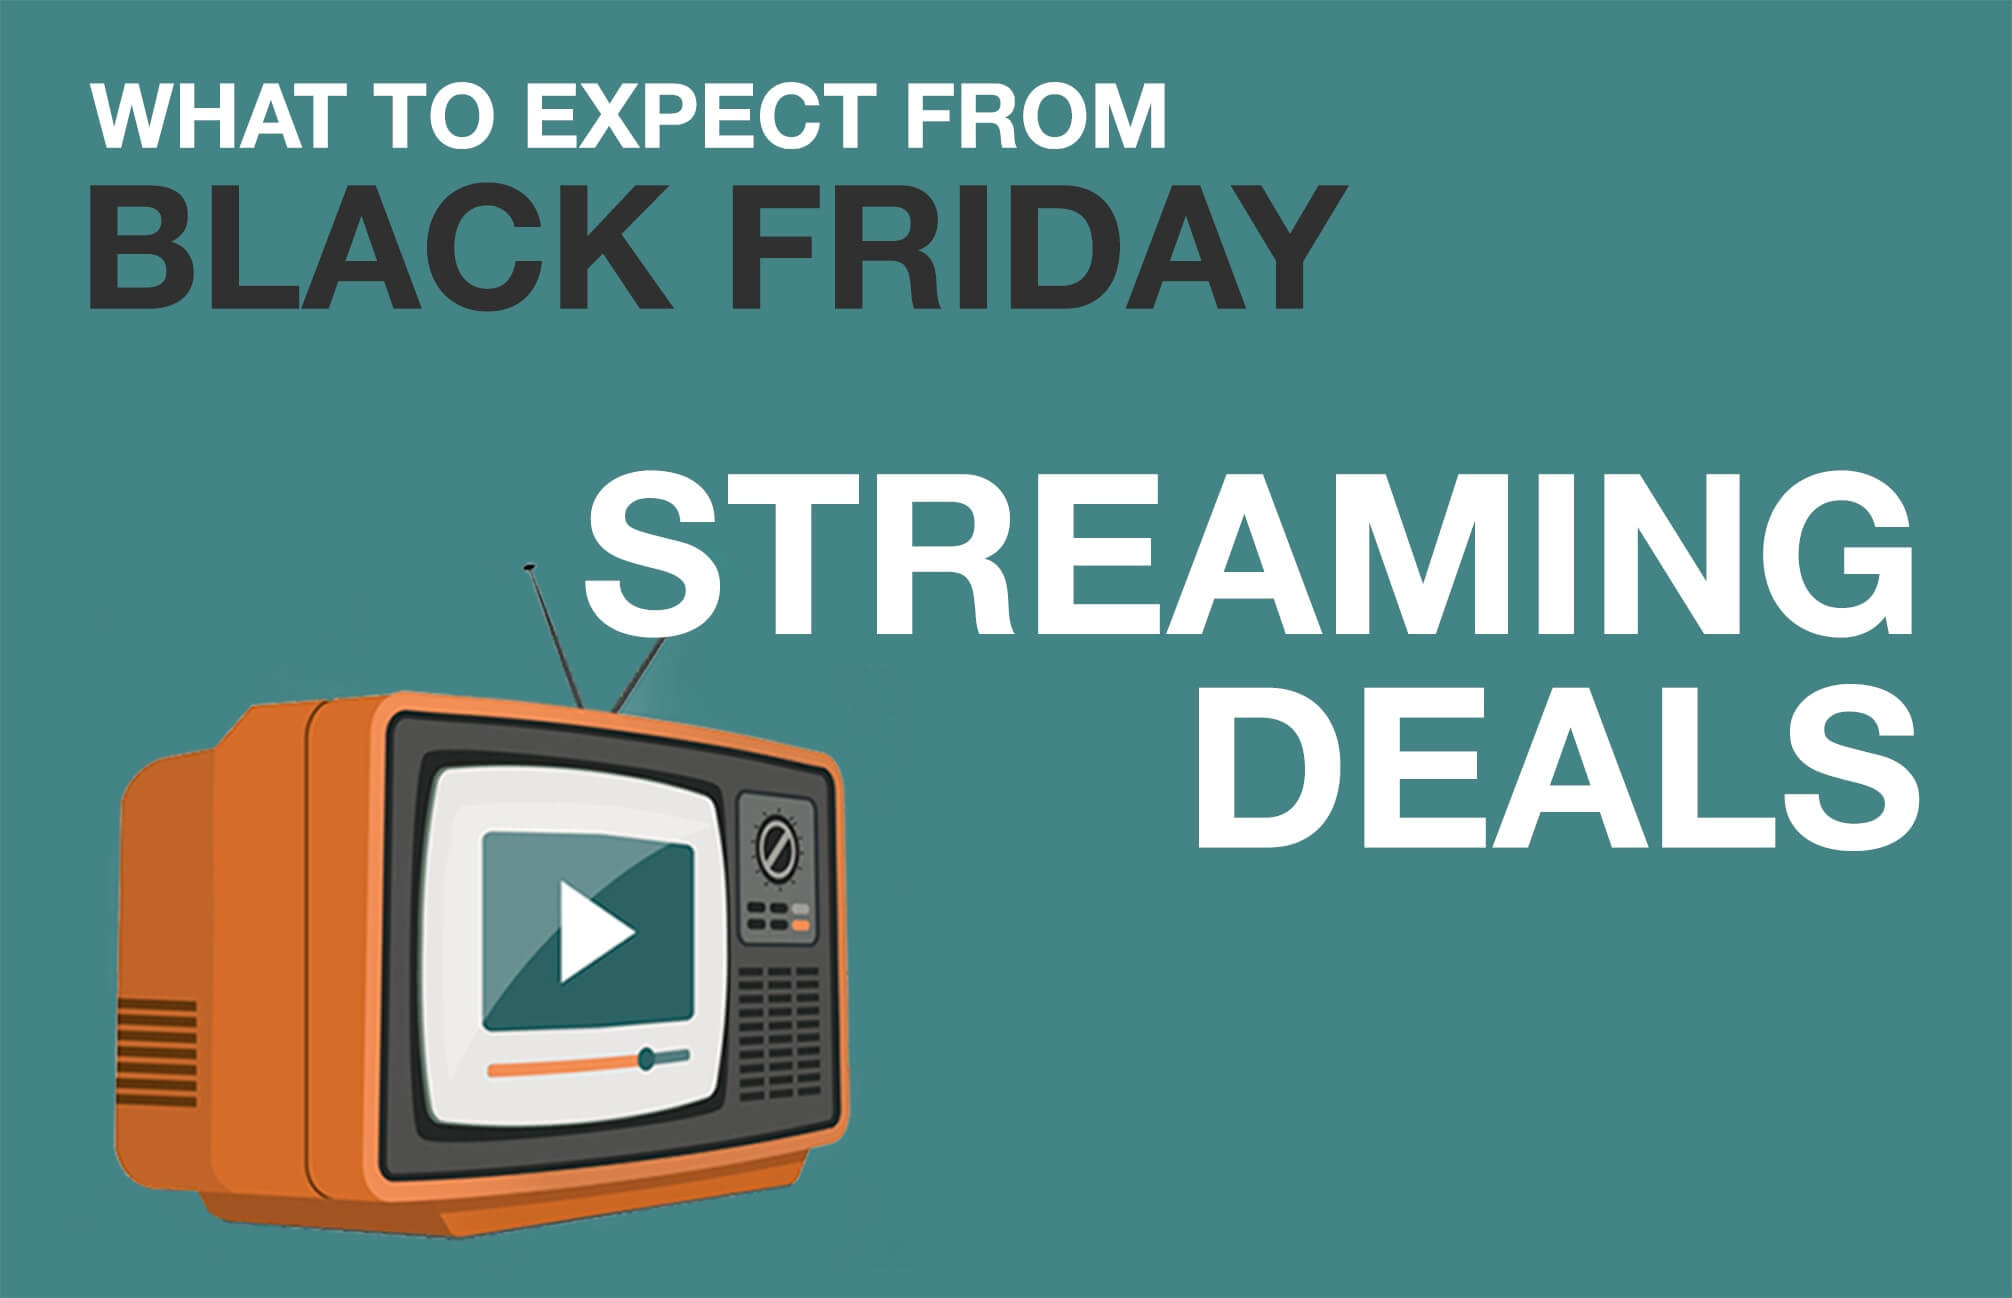 Black Friday predictions on streaming boxes: Everything will be under $100